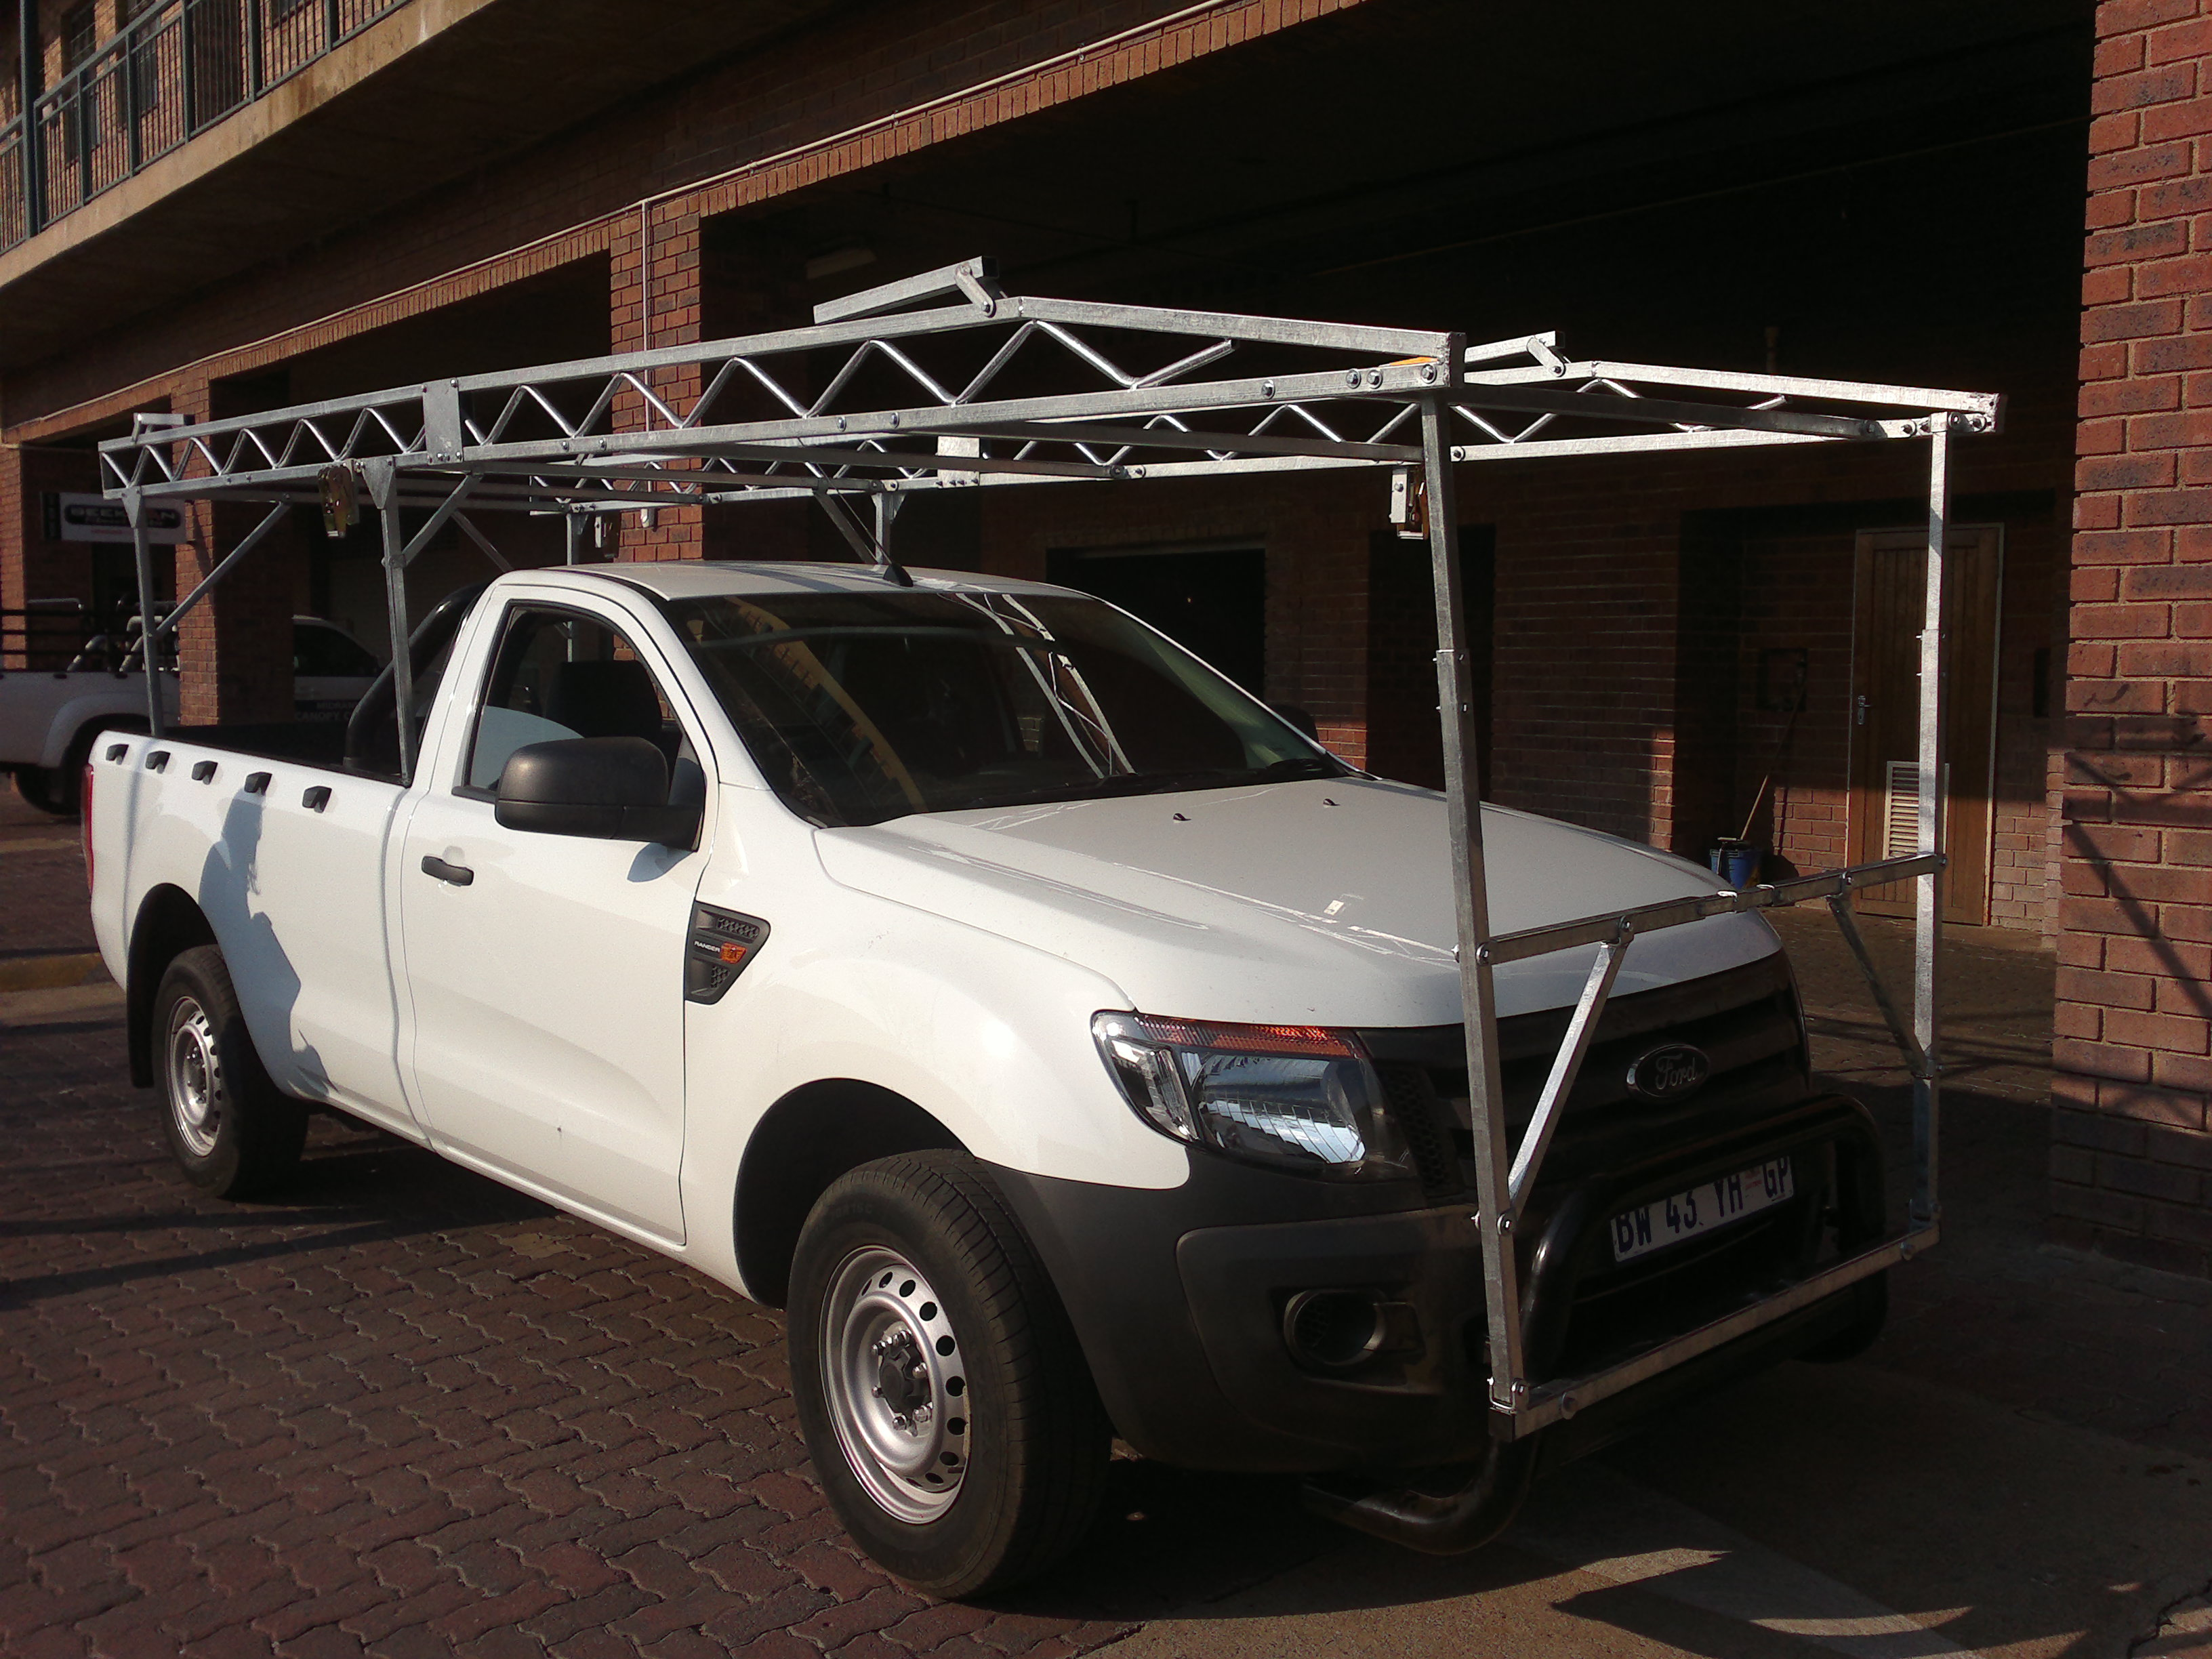 FORD RANGER T6 BUMPER TO BUMPER BAKKIE RACK & Bakkie Racks | Galvanized Steel | Lifetime Guarantee